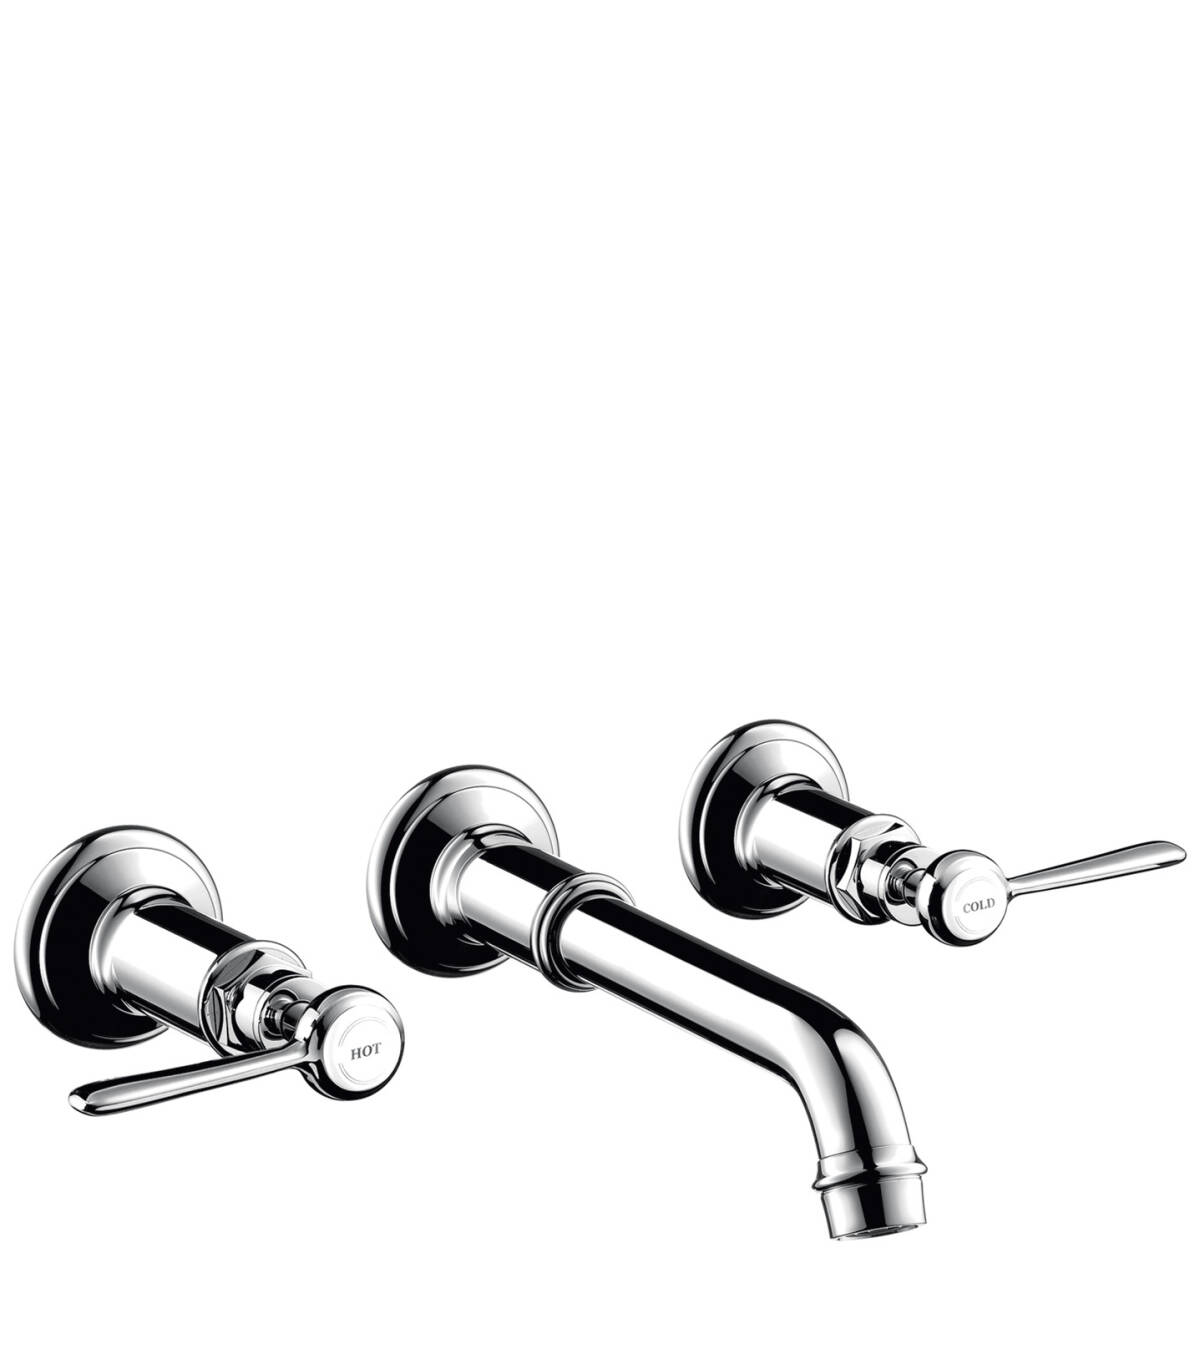 3-hole basin mixer for concealed installation wall-mounted with spout 165 - 225 mm and lever handles, Chrome, 16534000